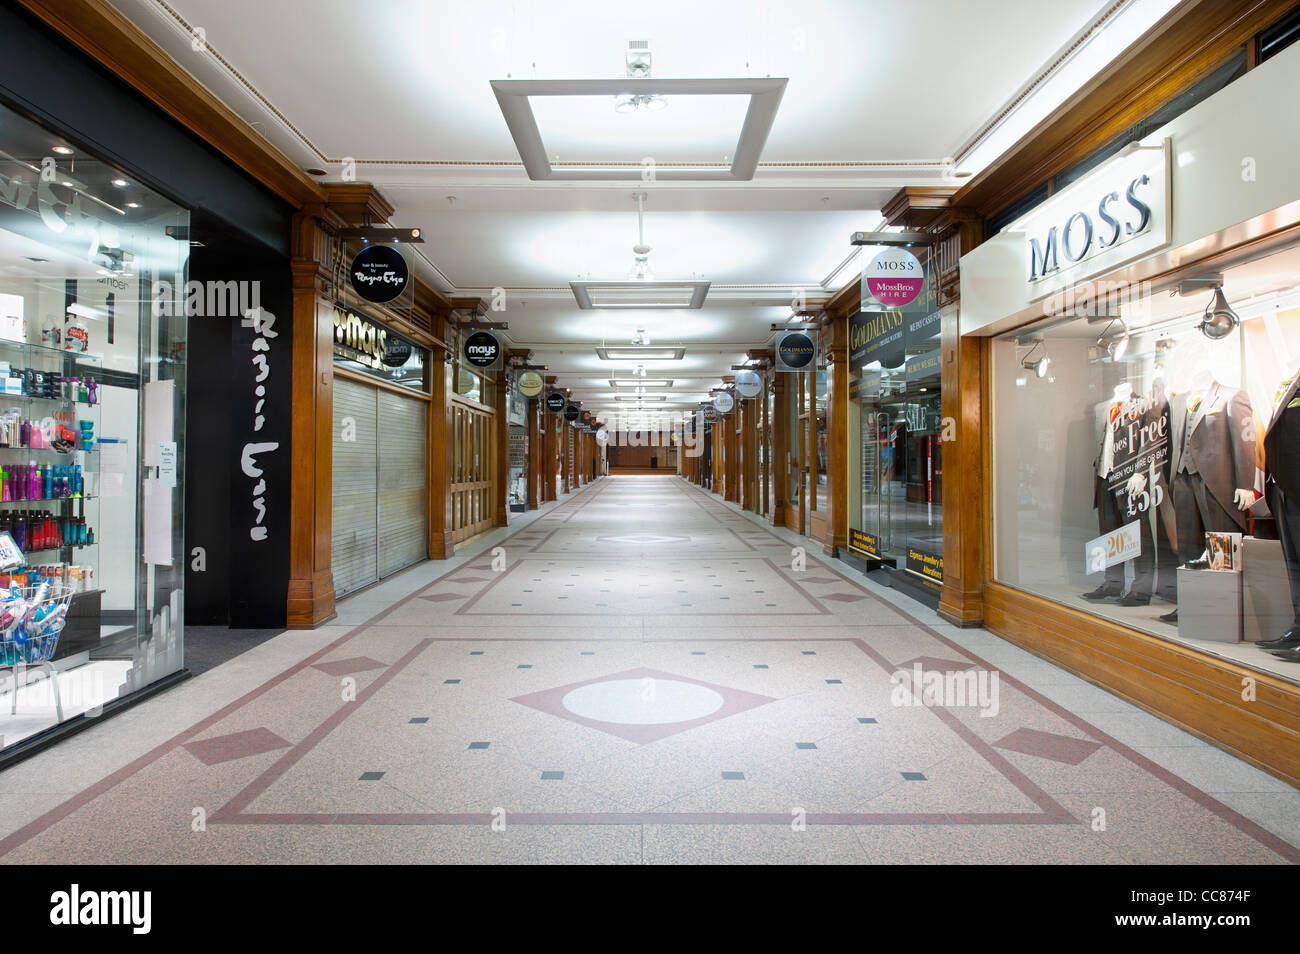 The Royal Exchange shopping arcade located between Cross Street and St Ann's Square in Manchester. - Stock Image